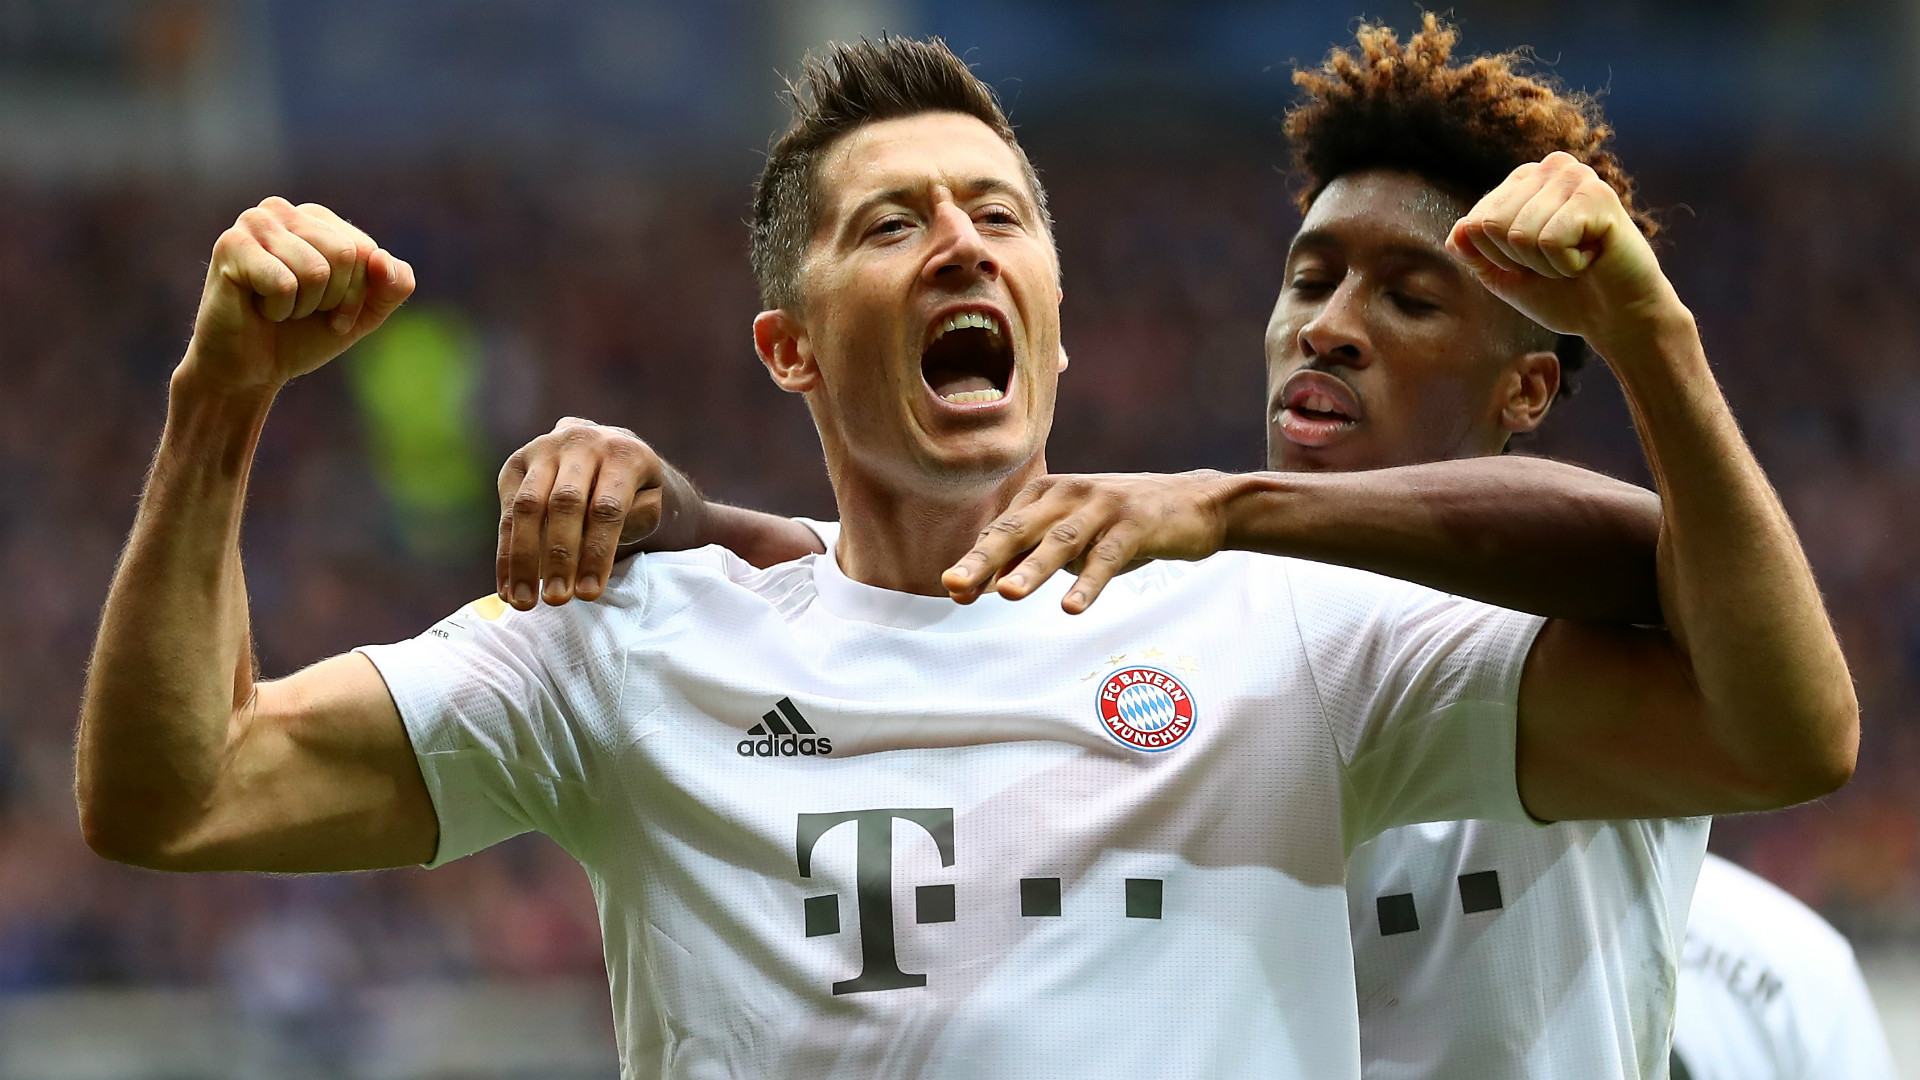 Lewandowski far and away Bayern Munich's best player and can deliver Champions League glory – Hargreaves